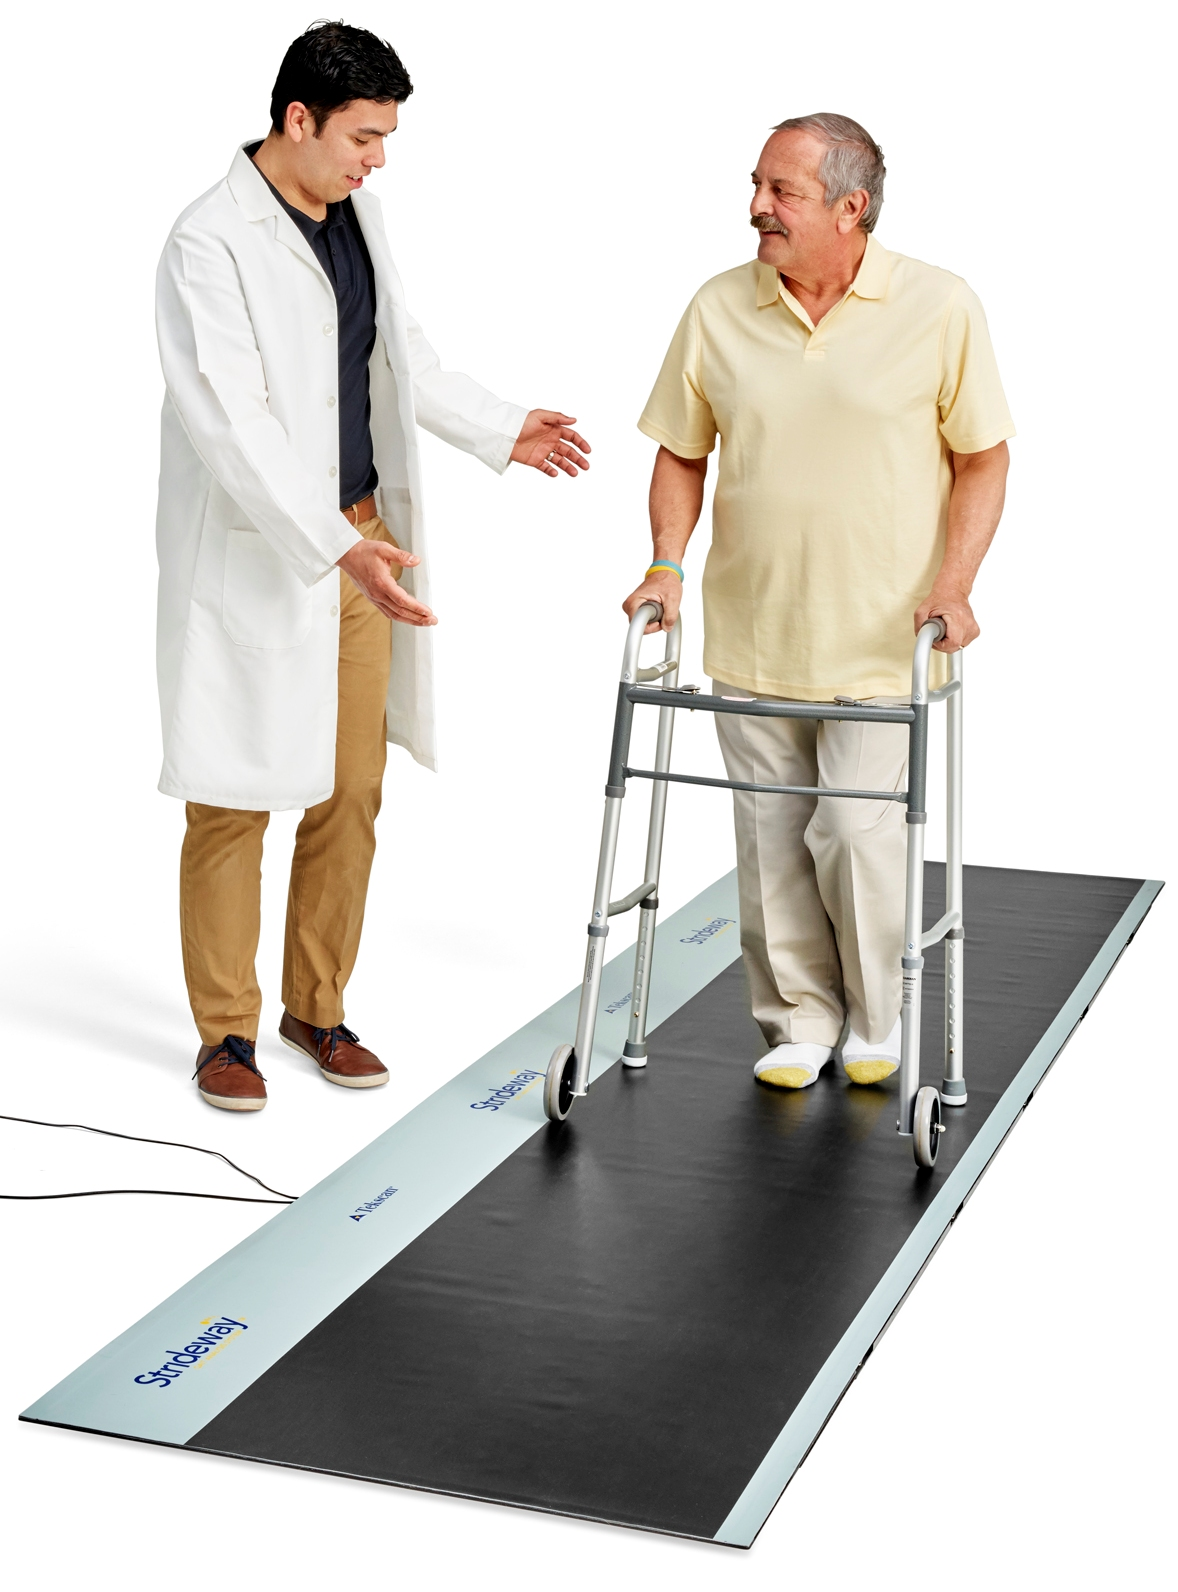 Strideway easily accommodates patients with walkers or other types of walking aides.